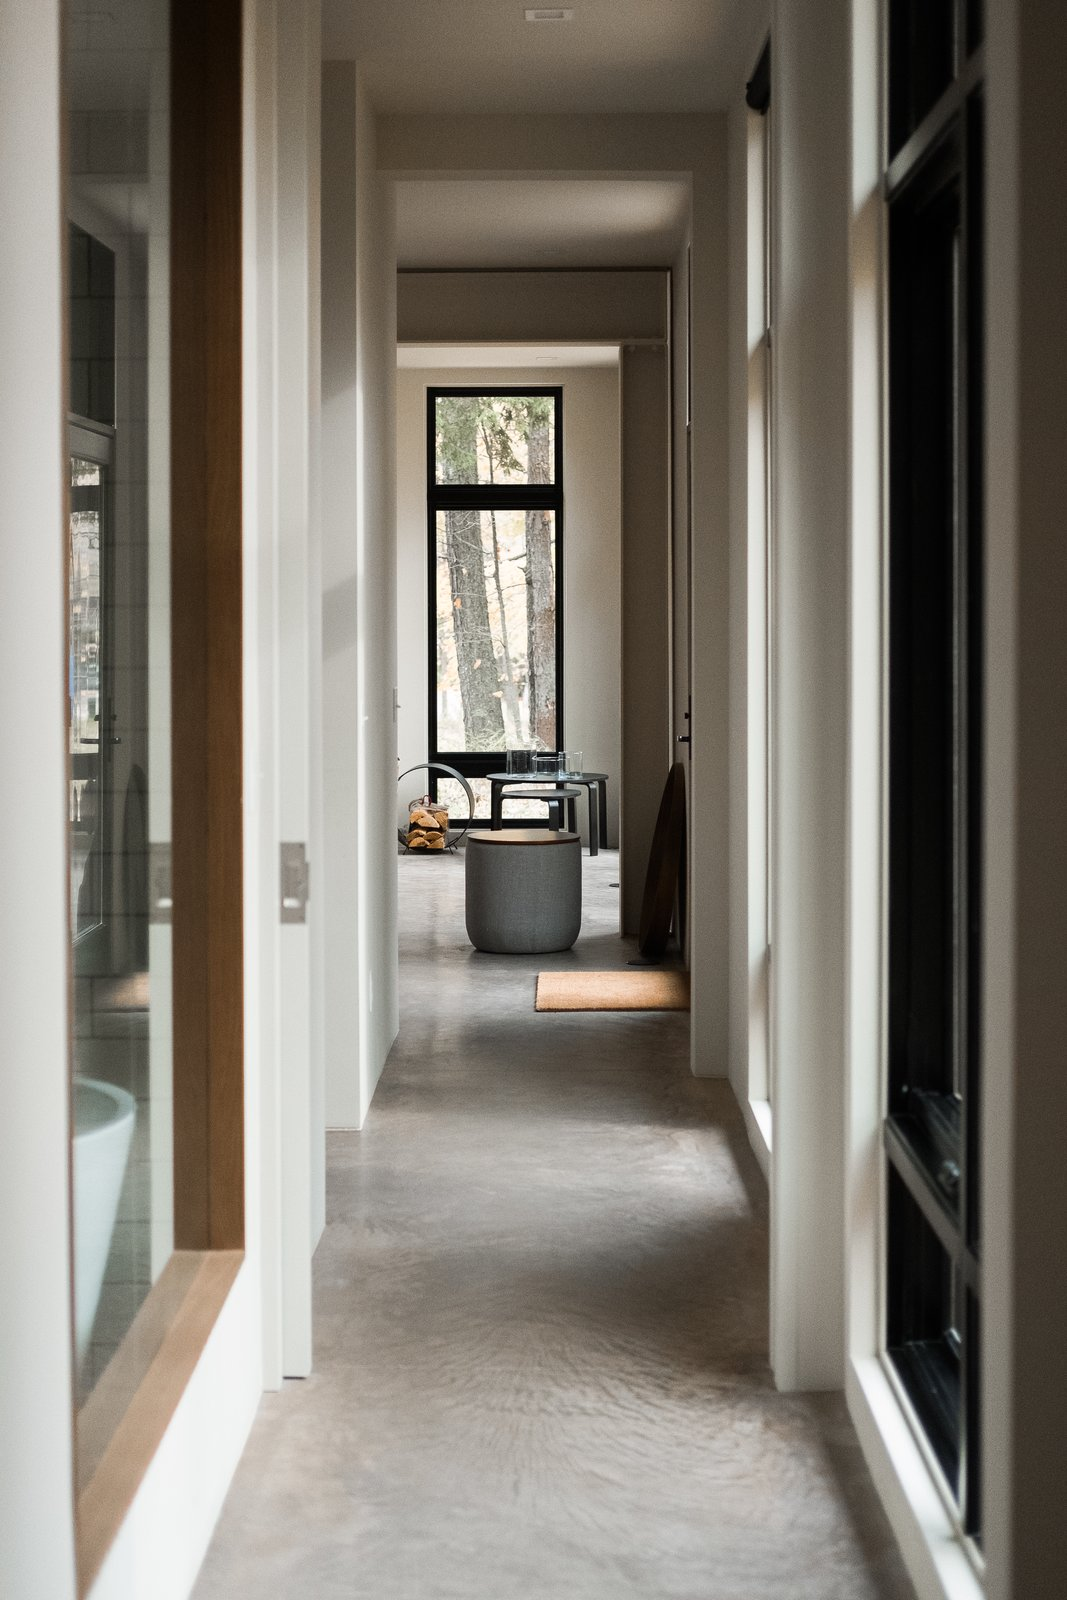 Hallway and Concrete Floor Hallway view from bedroom to great room.  North Shore #7 by Hygge Supply